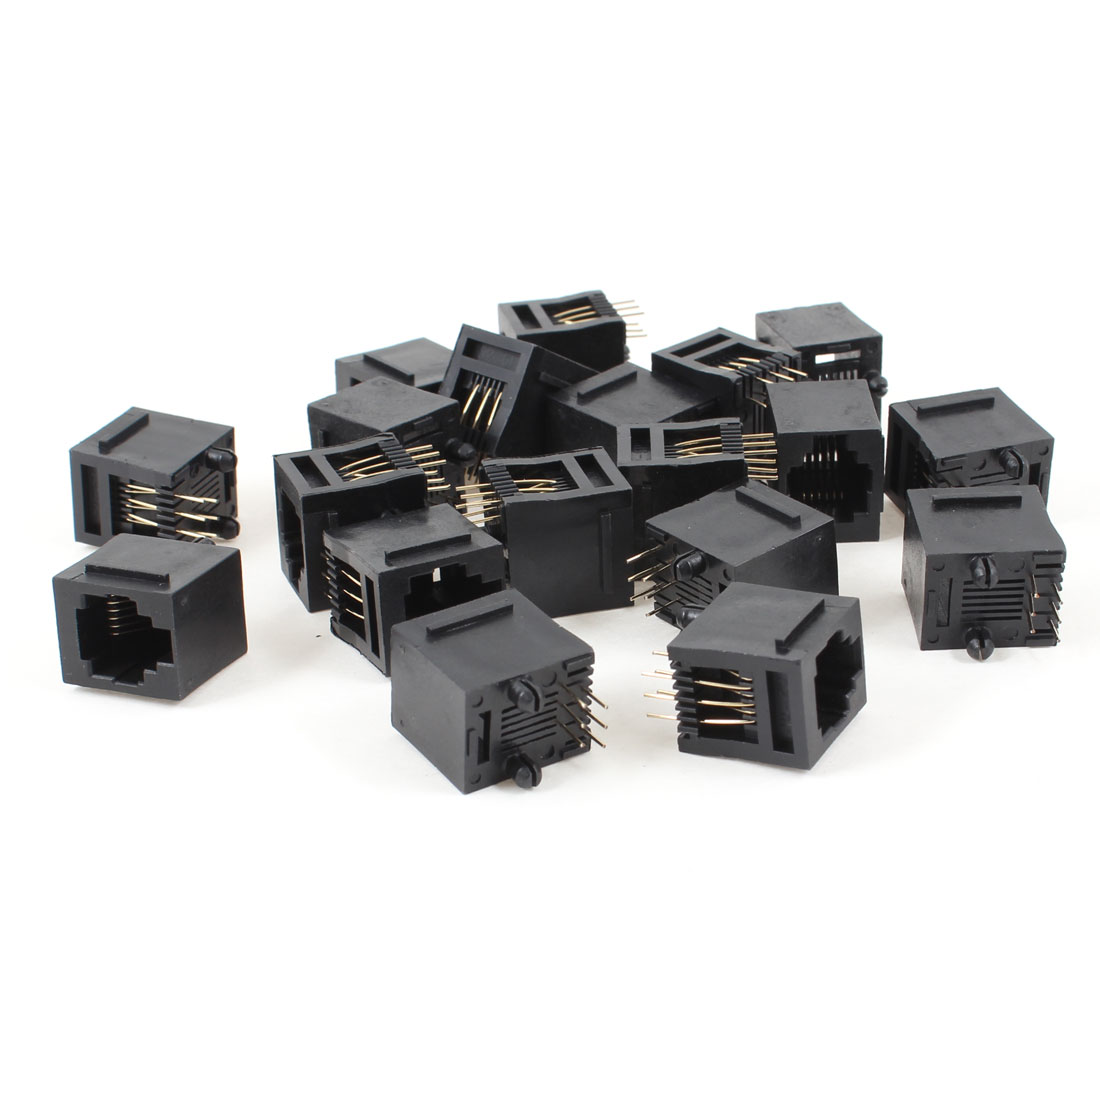 19 Pcs Black Plastic 180 Degree RJ12 6P6C Network Modular PCB Connector Jacks